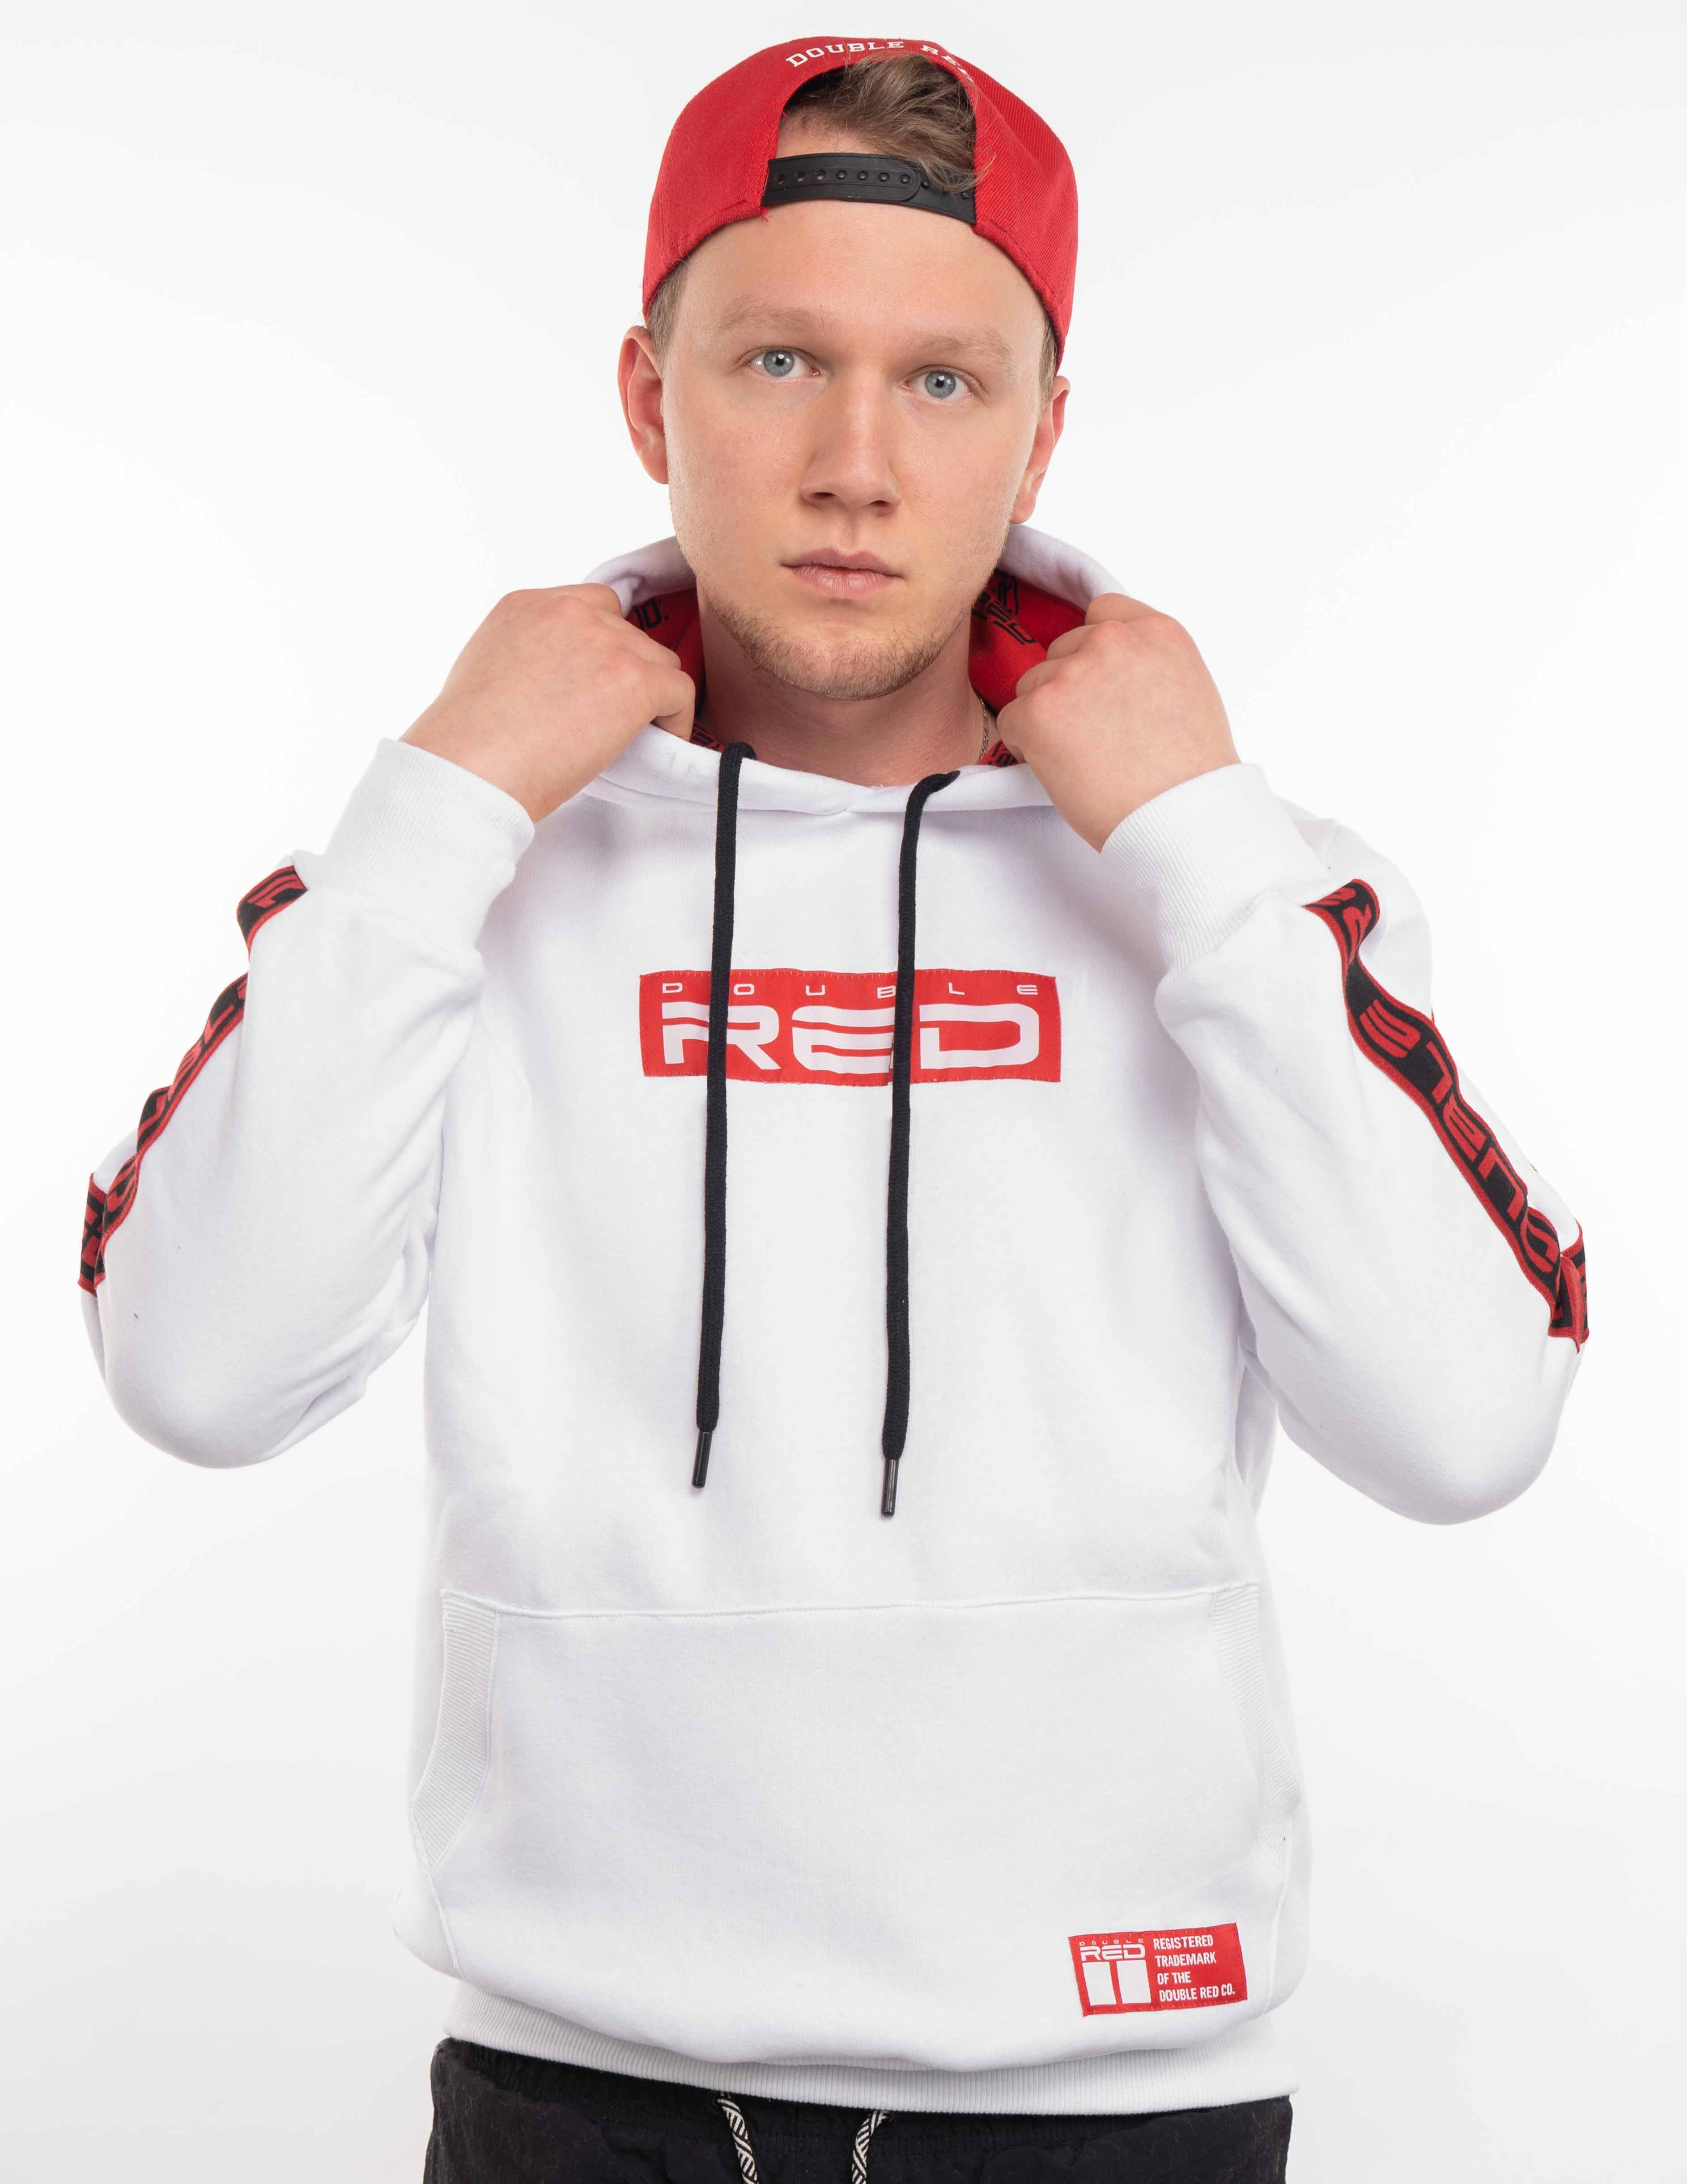 UNISEX OUTSTANDING FCK COVID LIMITED EDITION White/Red